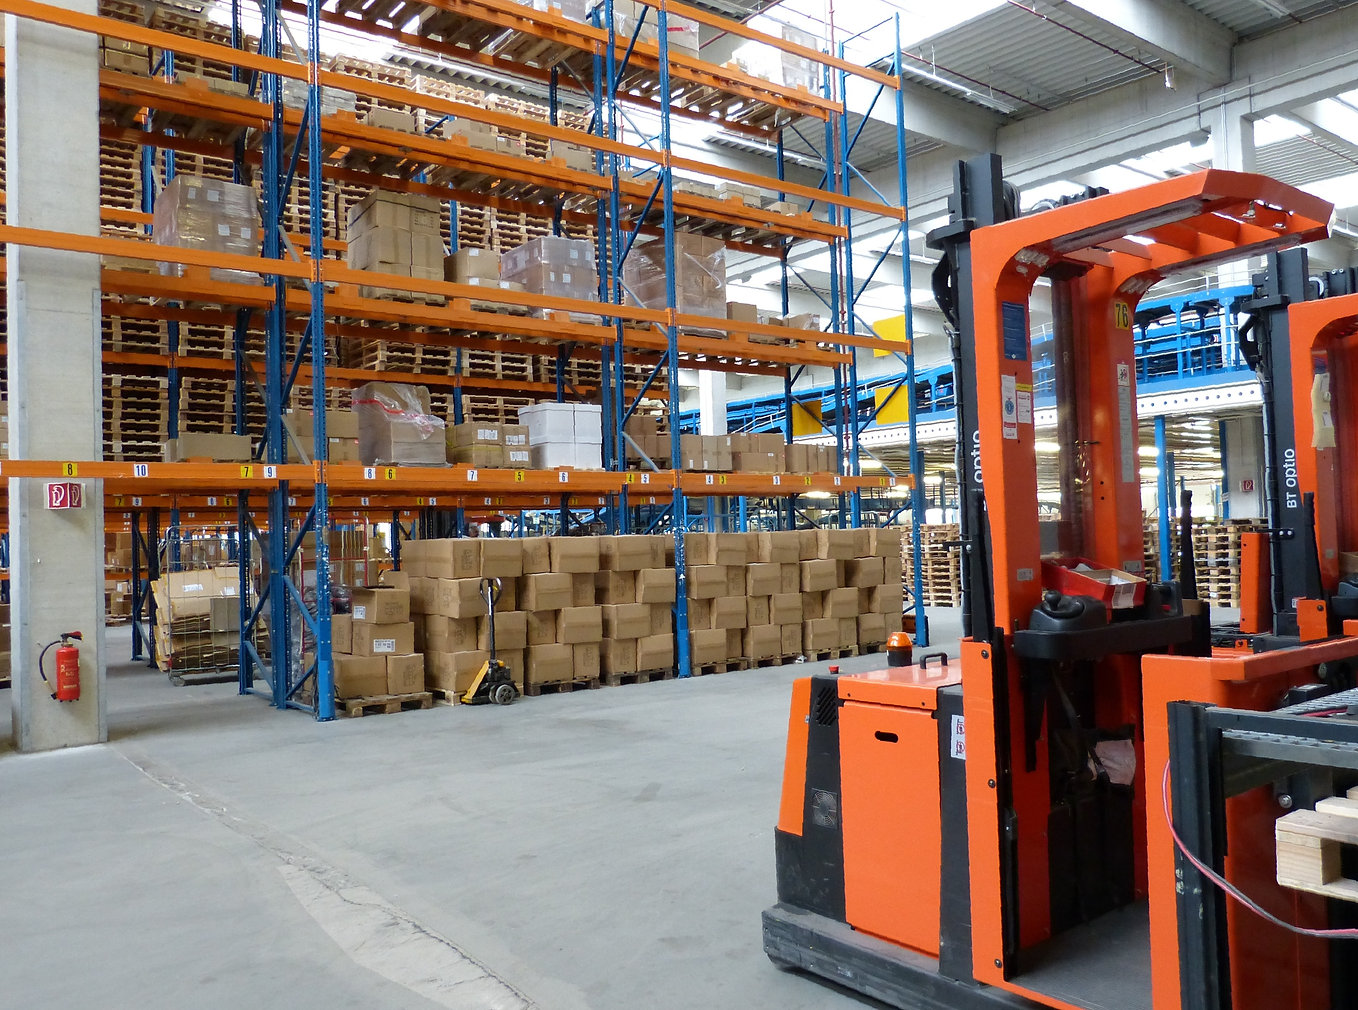 Warehouse with Forklift